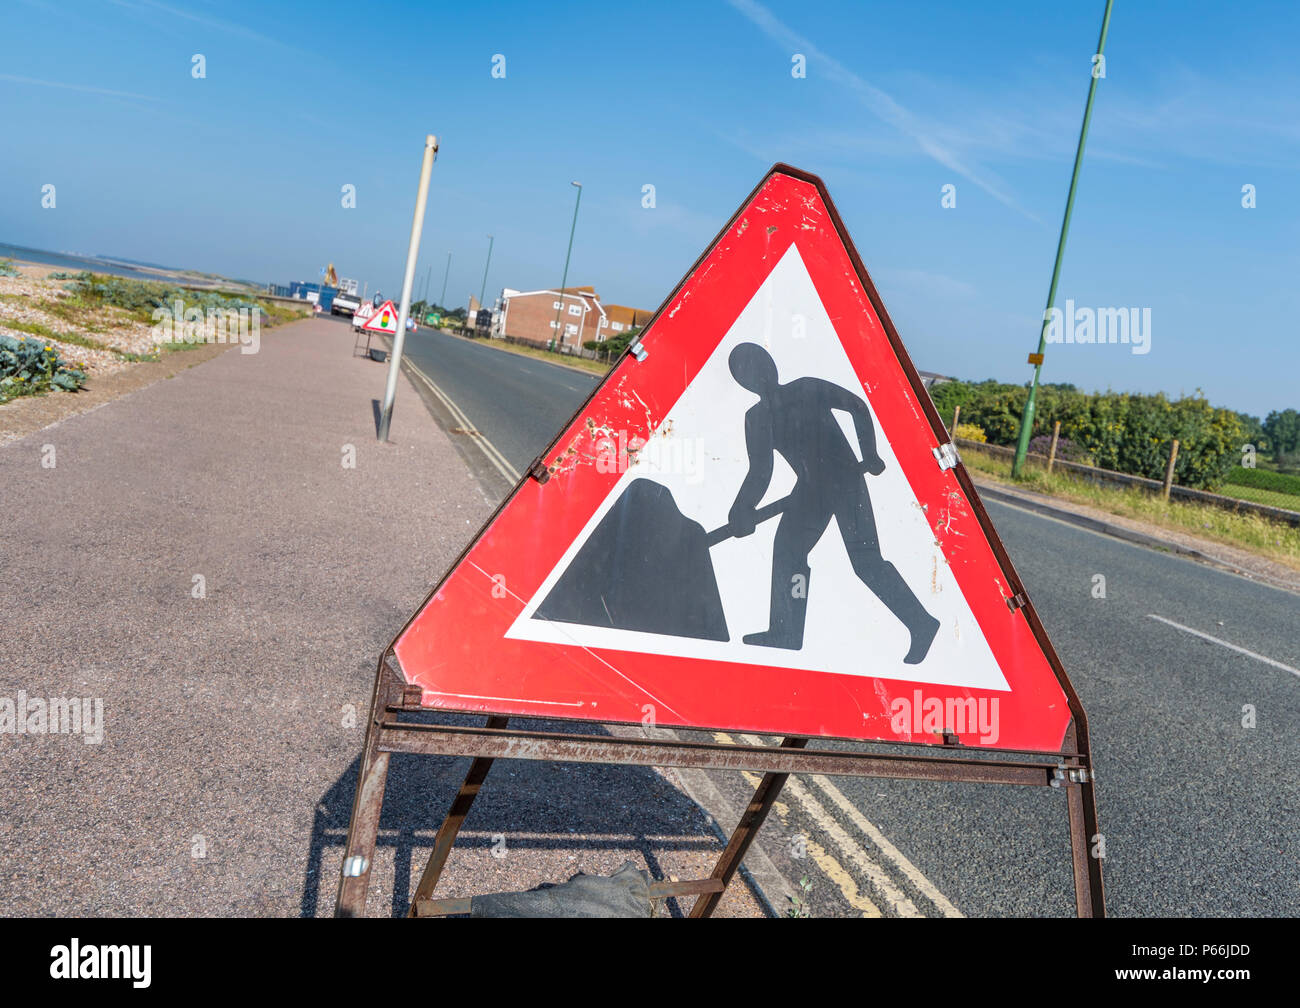 Triangular portable roadworks sign in the UK. - Stock Image